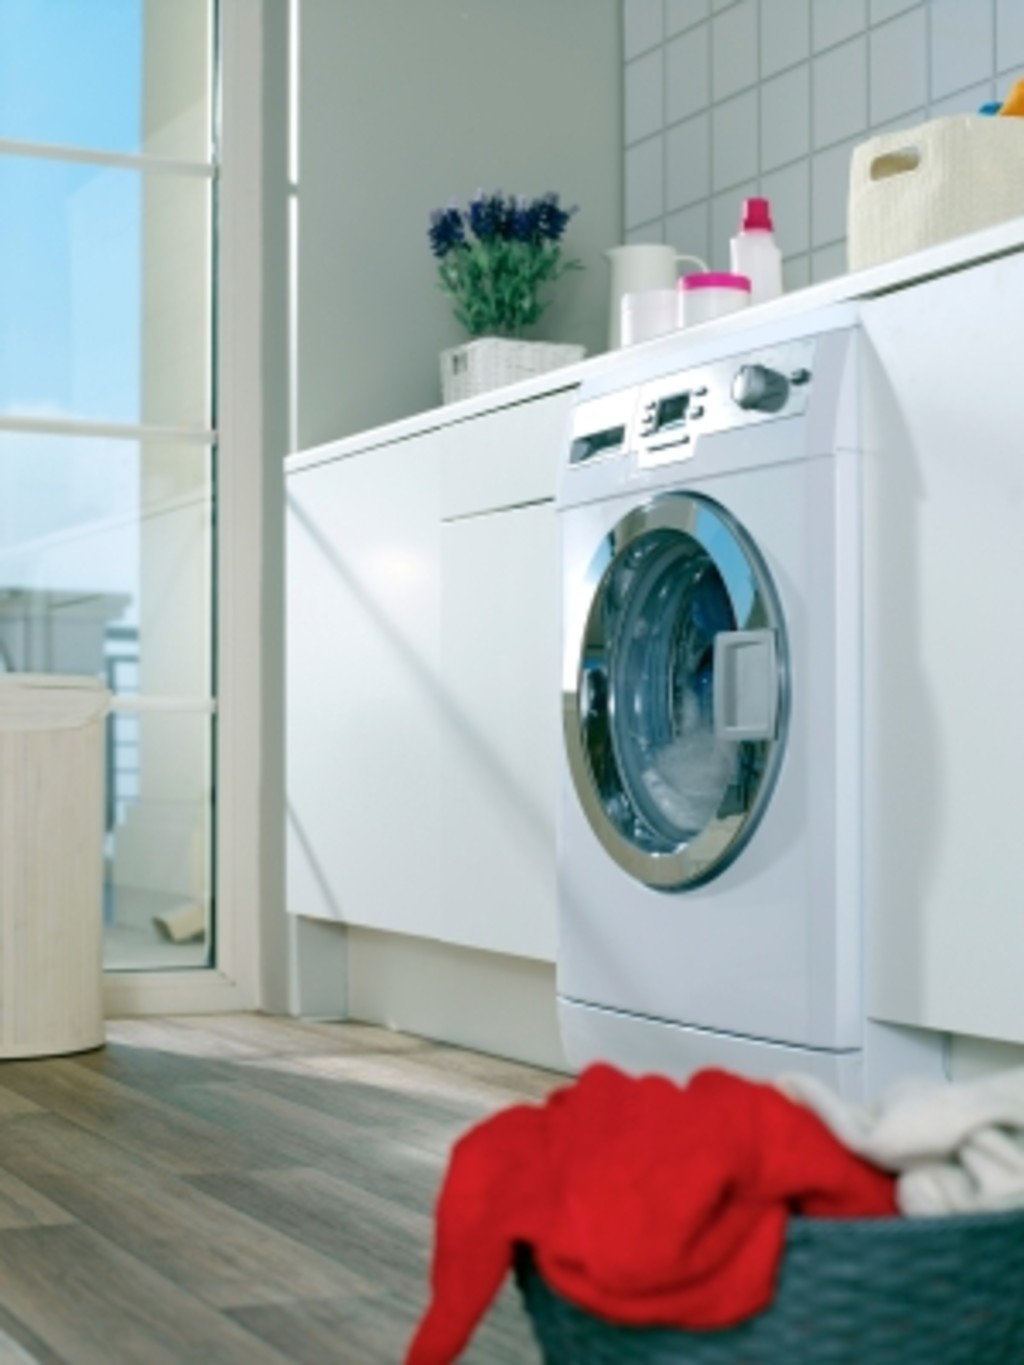 Advancetech Appliance Service - Fixed Dryer